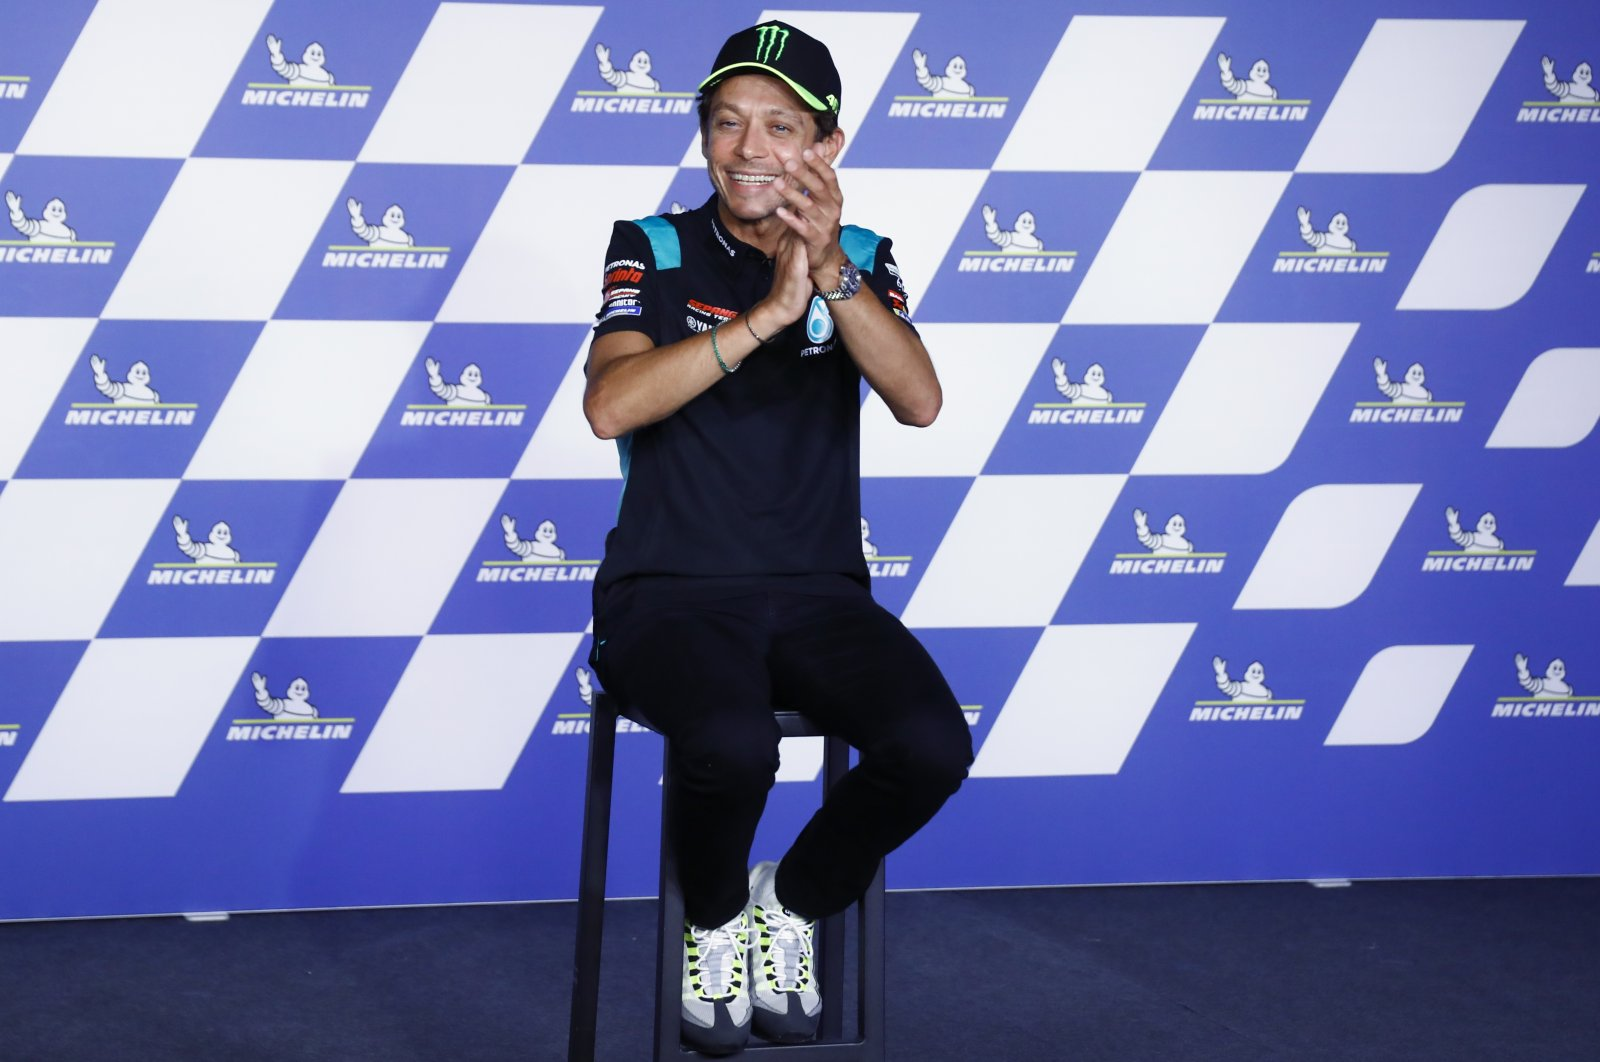 Italian rider Valentino Rossi attends a news conference ahead of the MotoGP motorcycle race Grand Prix of Styria at the Red Bull Ring in Spielberg, Austria, Aug. 5, 2021. (AP Photo)